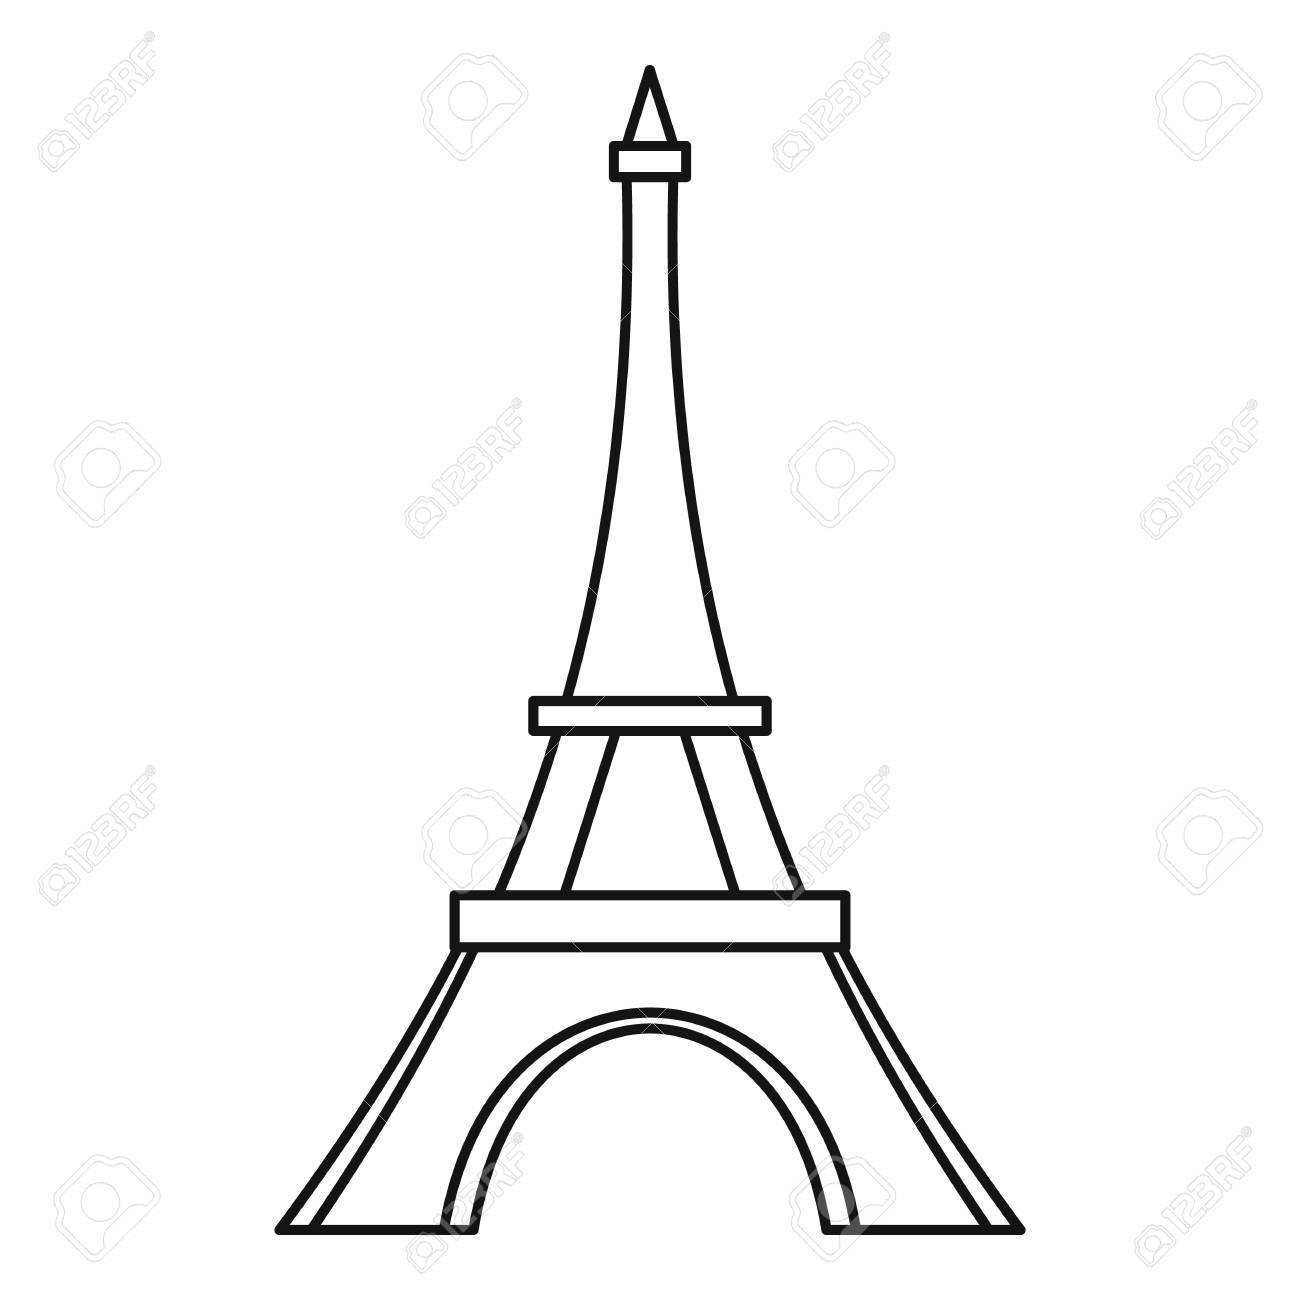 Eiffel tower icon outline illustration of eiffel tower vector eiffel tower icon outline illustration of eiffel tower vector icon for web stock vector thecheapjerseys Gallery